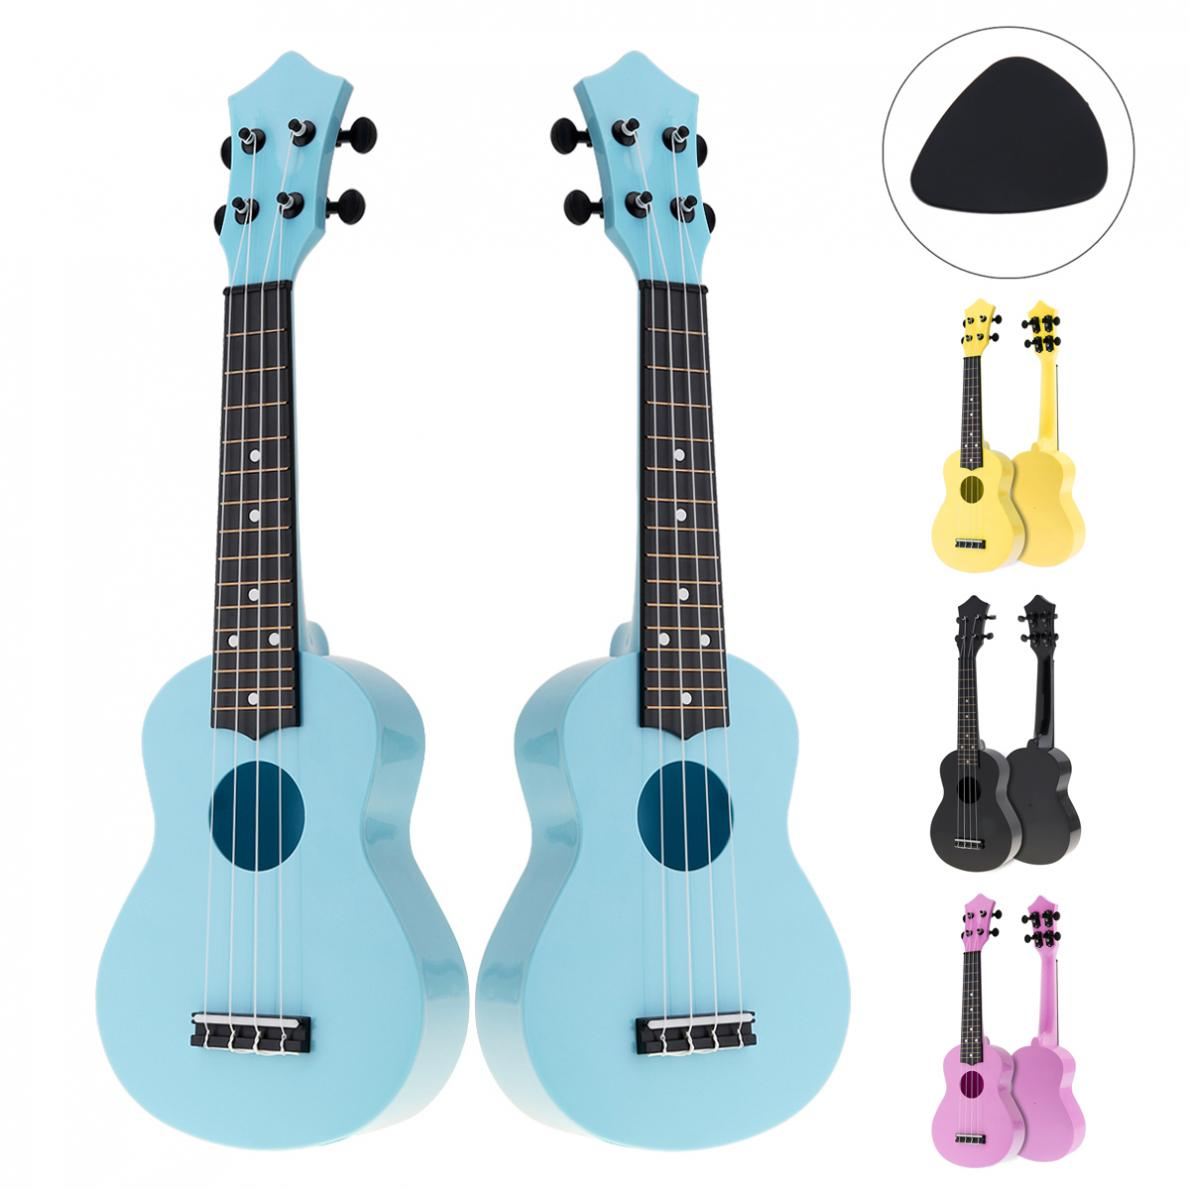 IRIN 21 Inch Colorful Acoustic Ukelele Uke 4 Strings Hawaii Guitar Guitarra Instrument for Kids and Music Beginner ...